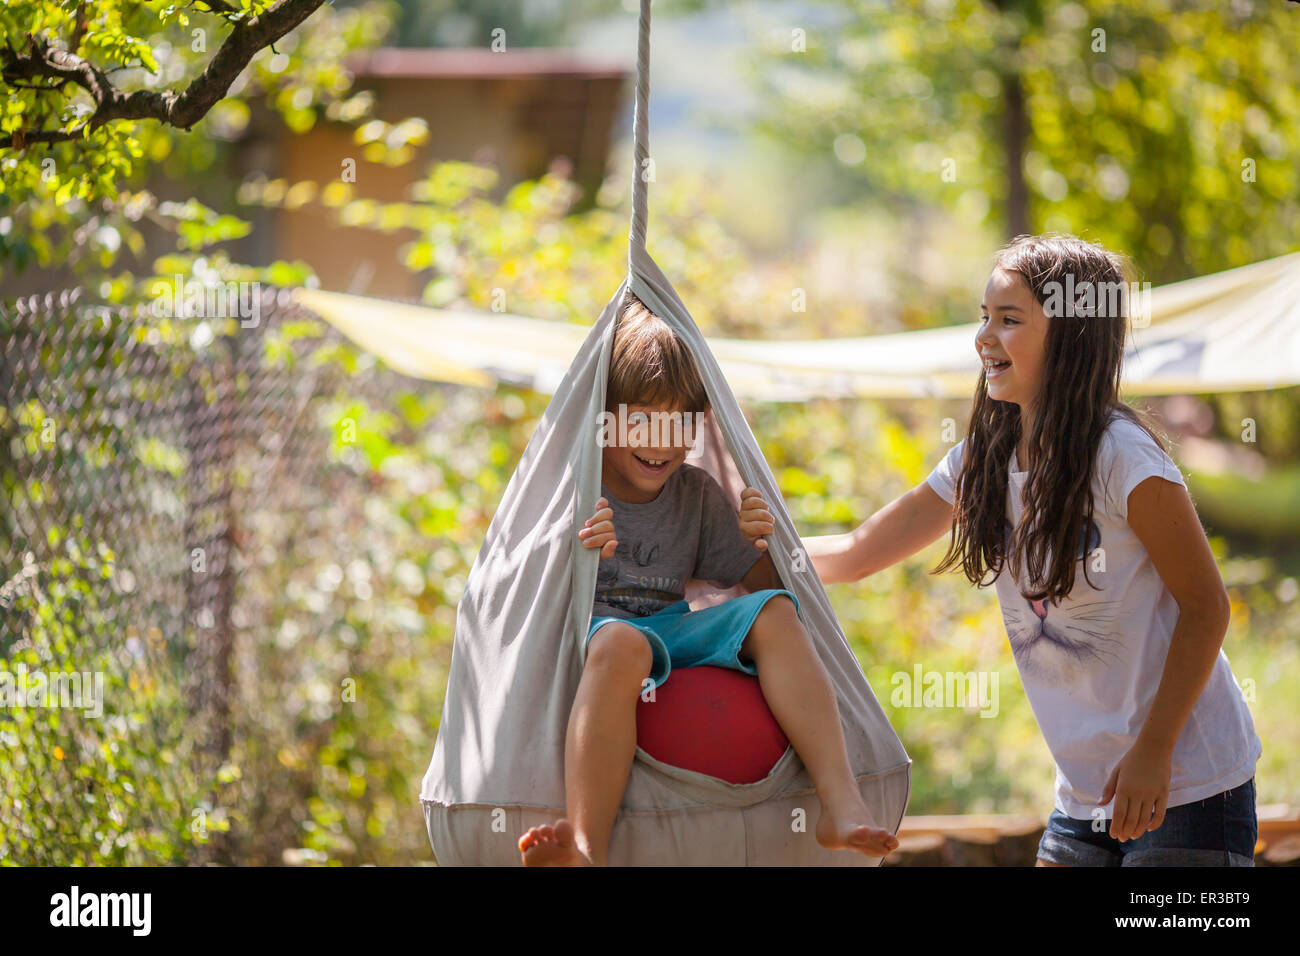 Boy and girl playing on a swing in the garden Stock Photo